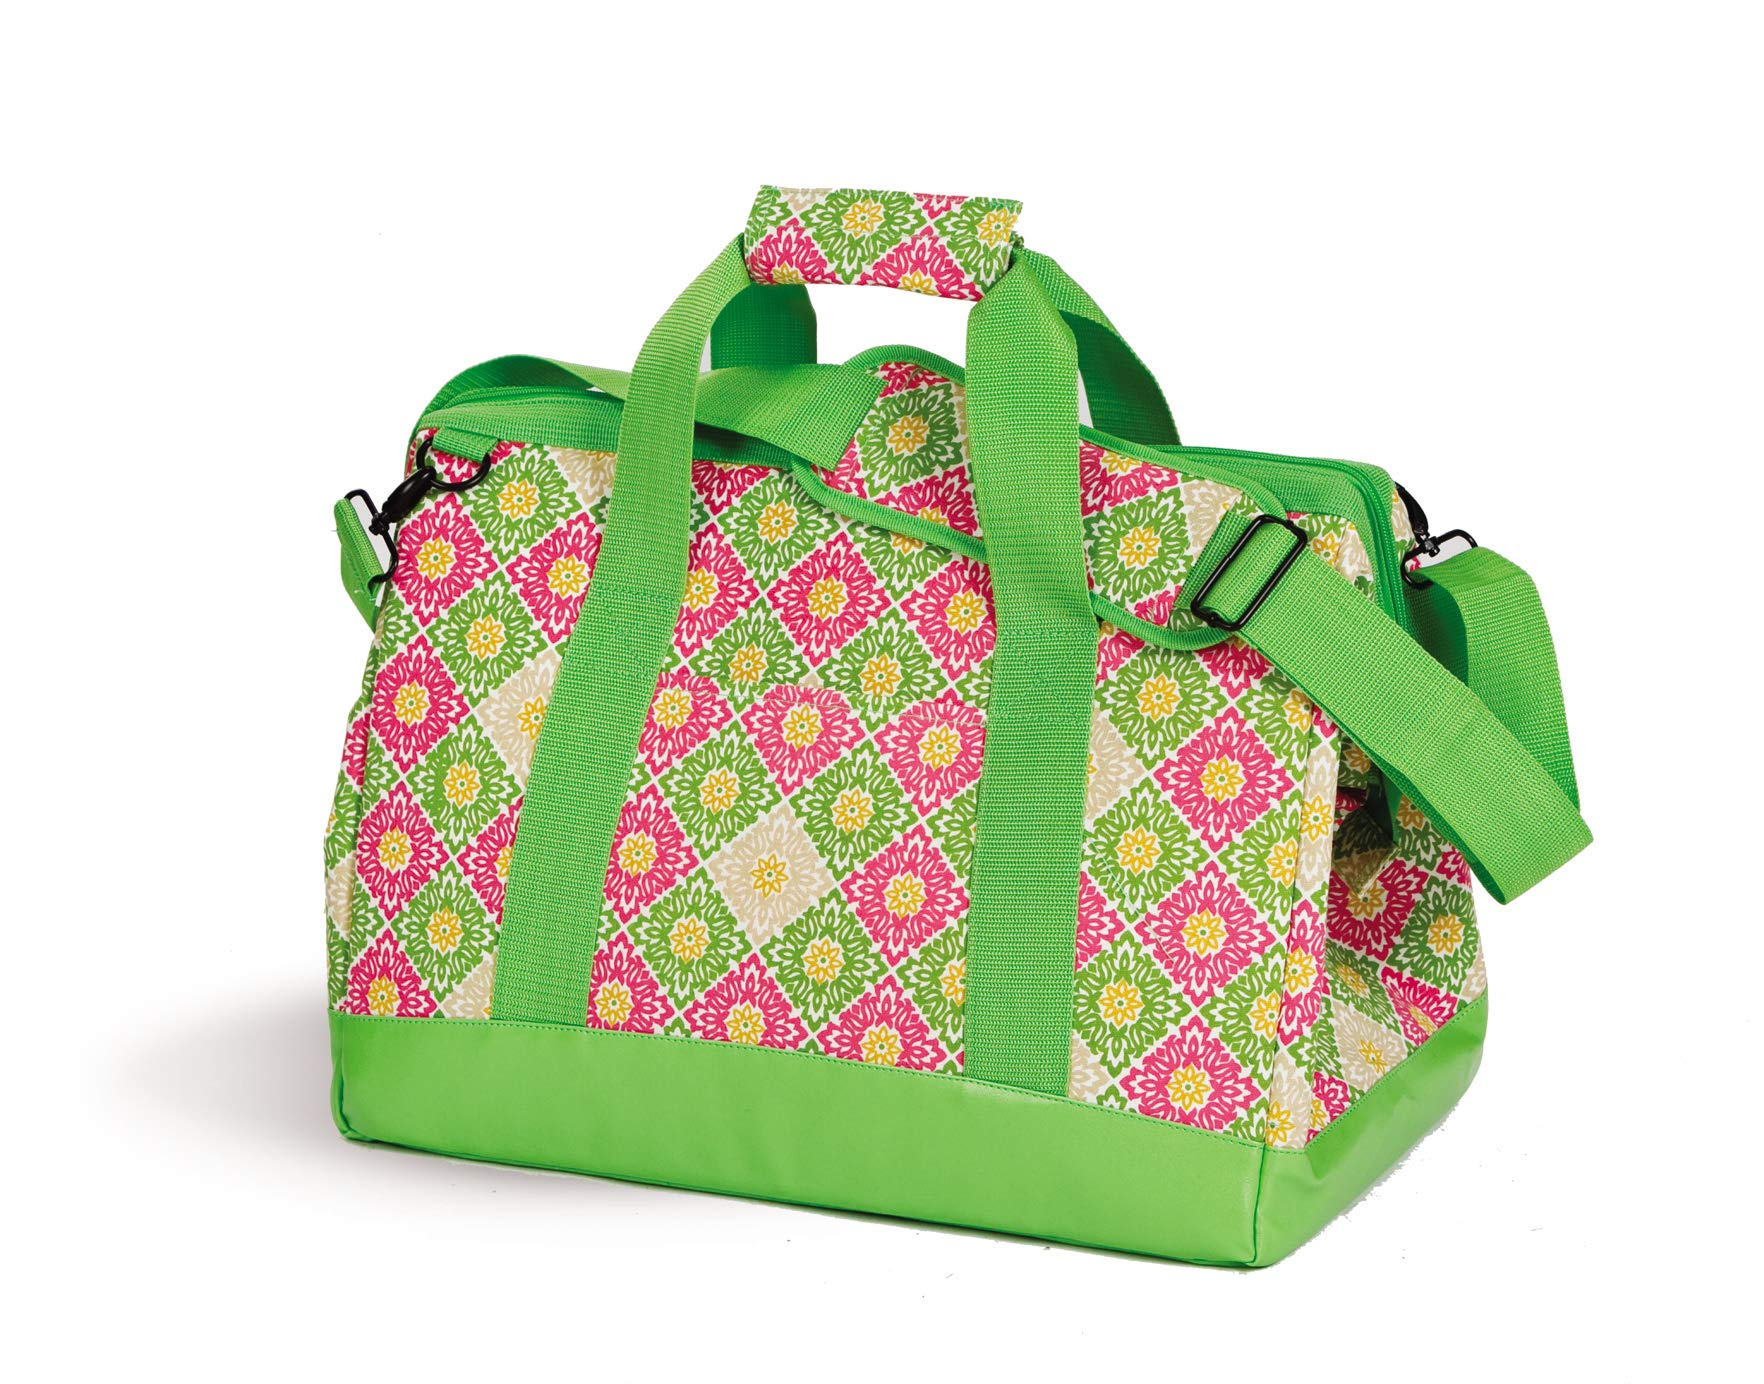 Picnic Plus Spacious Thermal Foil Lined Extra Large Cooler Bag Holds Hot or Cold Foods Green Gazebo